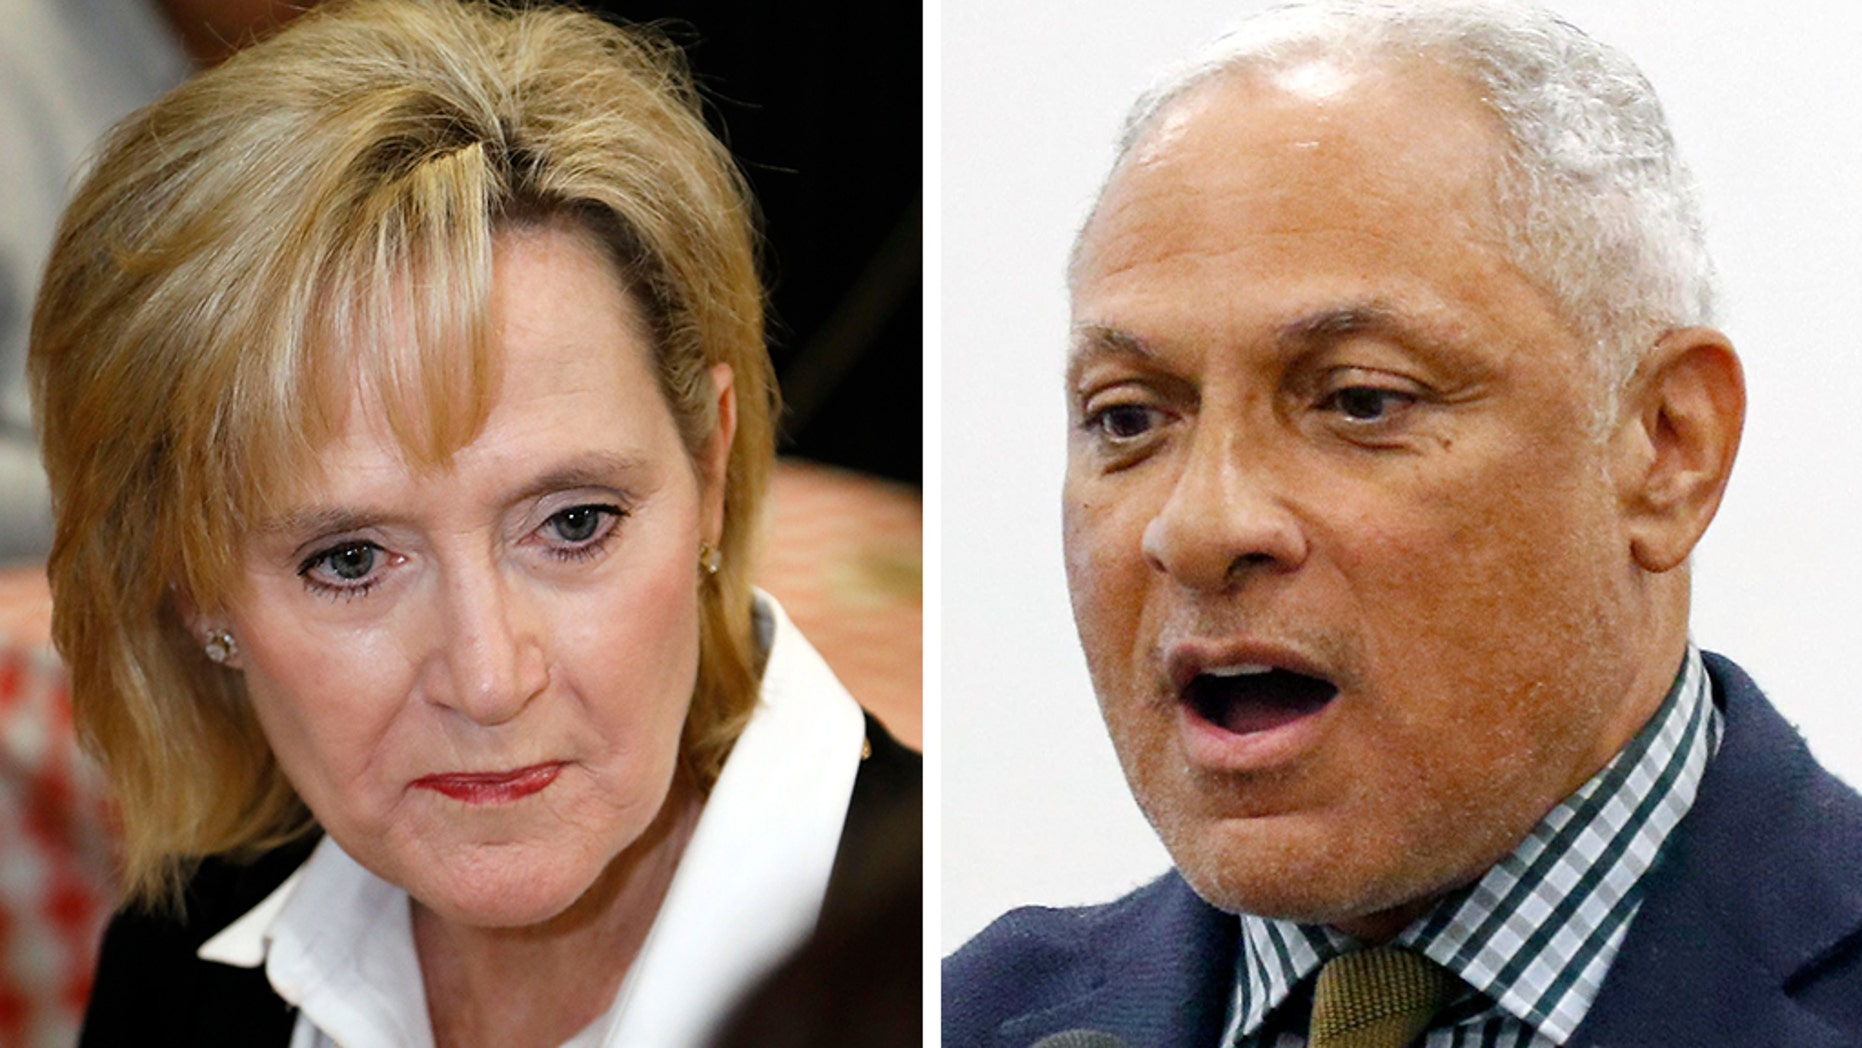 Mississippi Senate runoff candidates, Republican Cindy Hyde-Smith and Democrat Mike Espy